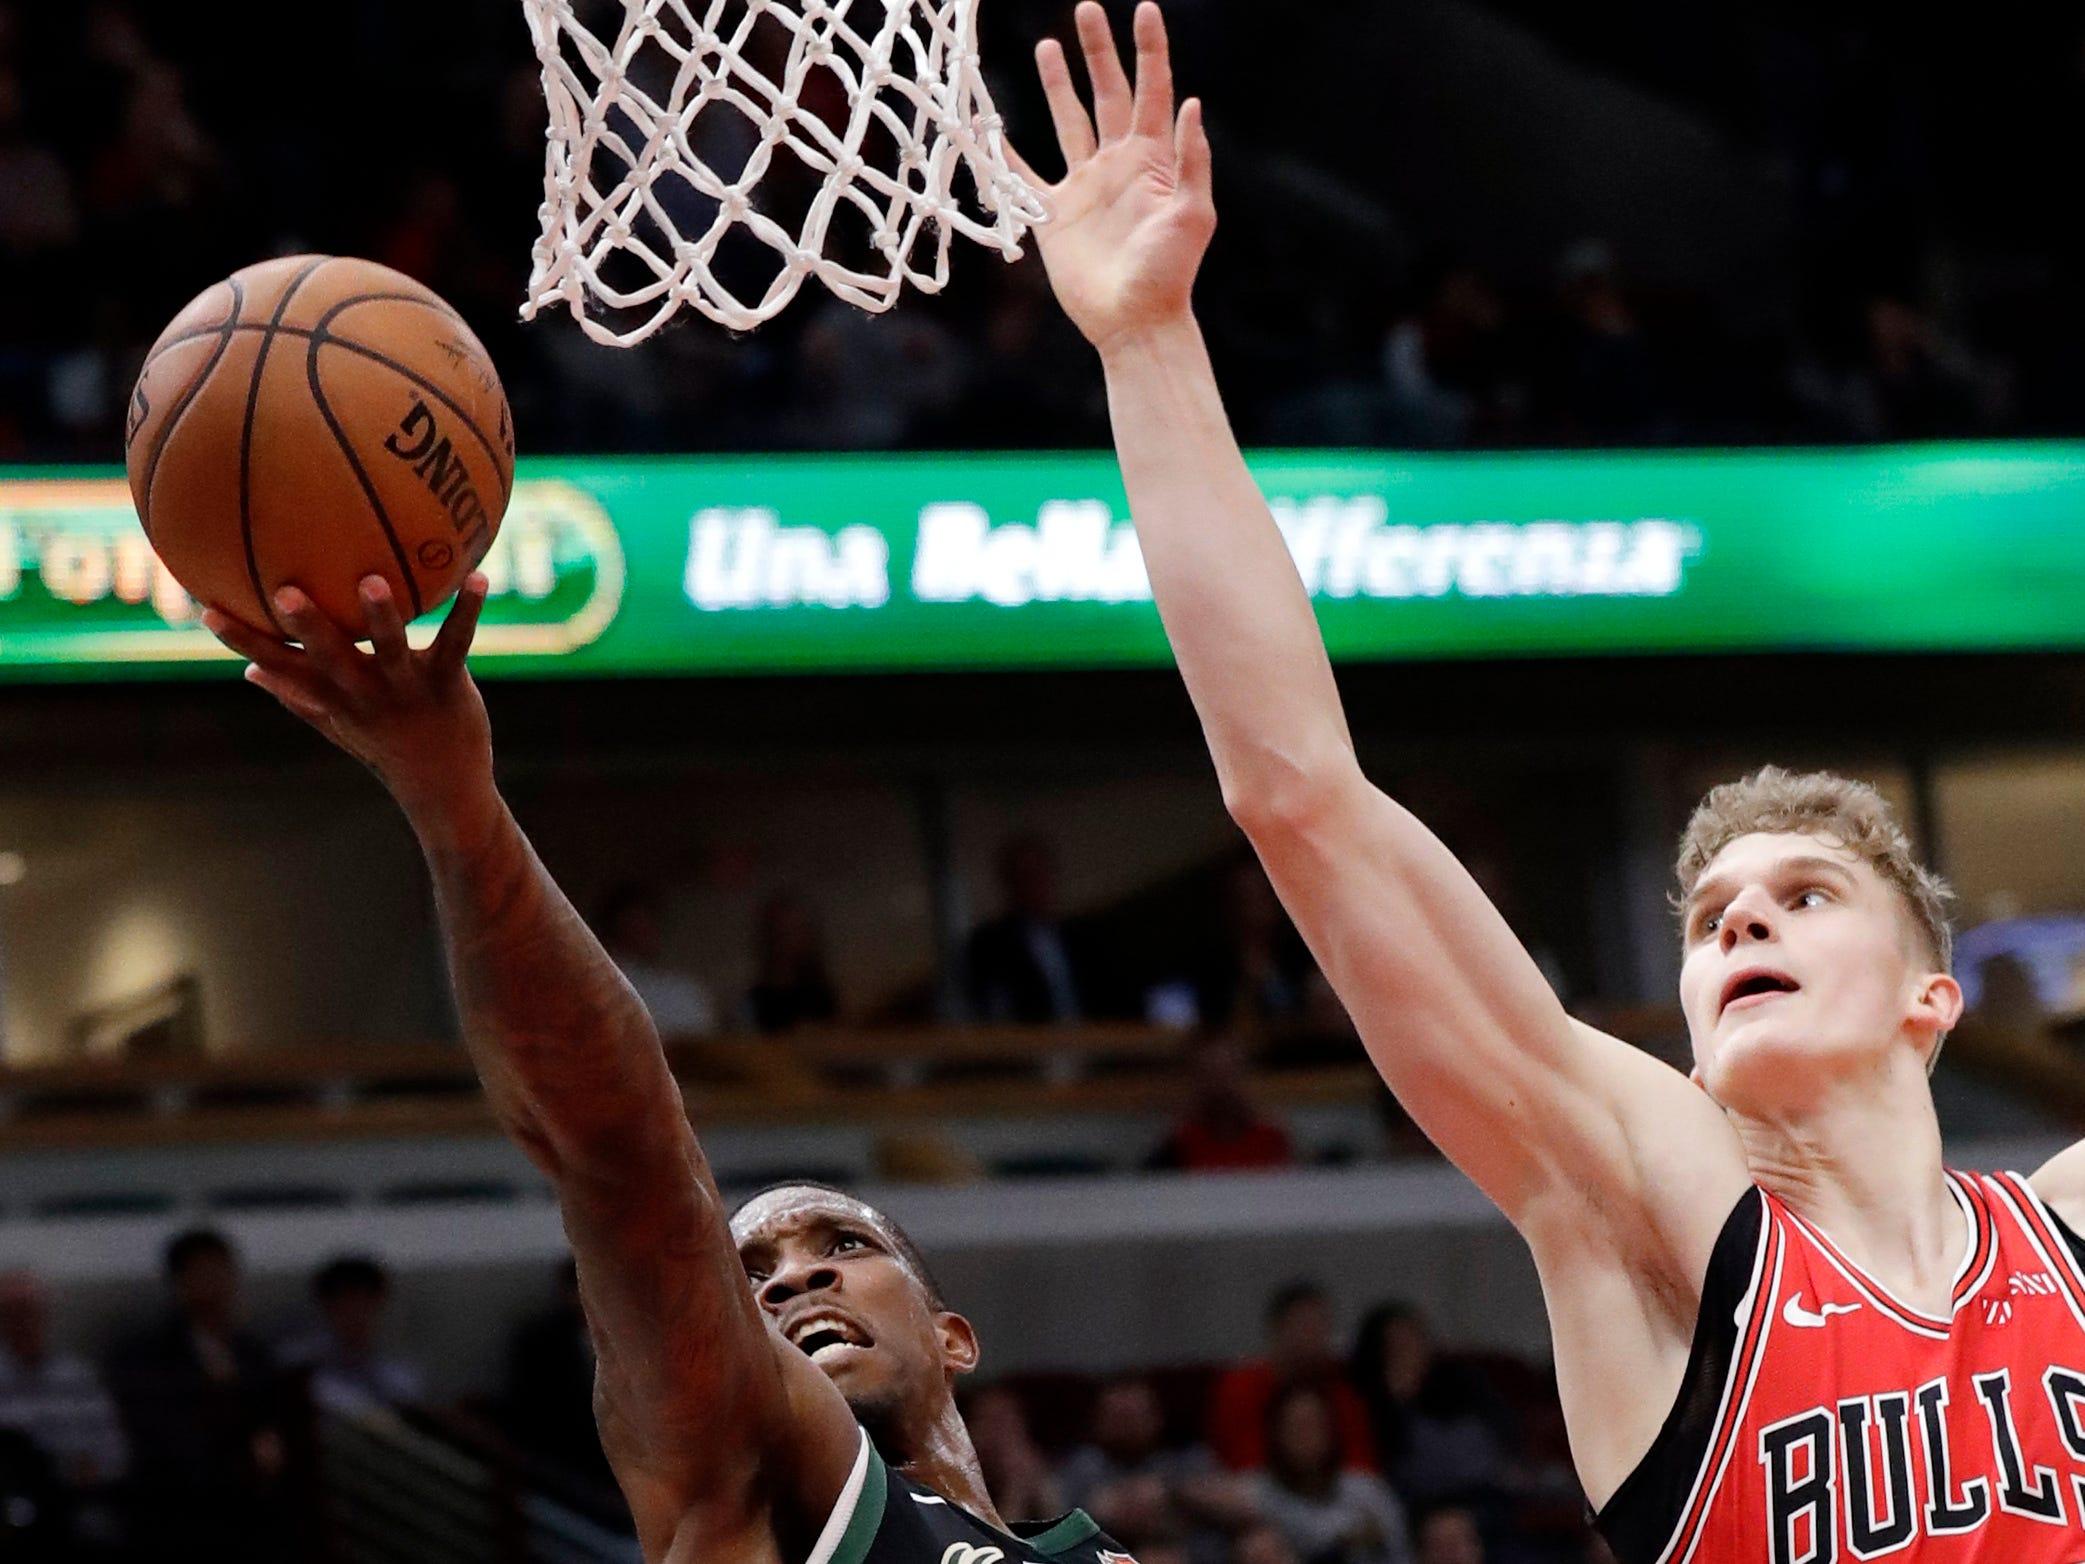 Bucks guard Eric Bledsoe gets to the rim for a layup ahead of Bulls forward Lauri Markkanen during the second half Monday.